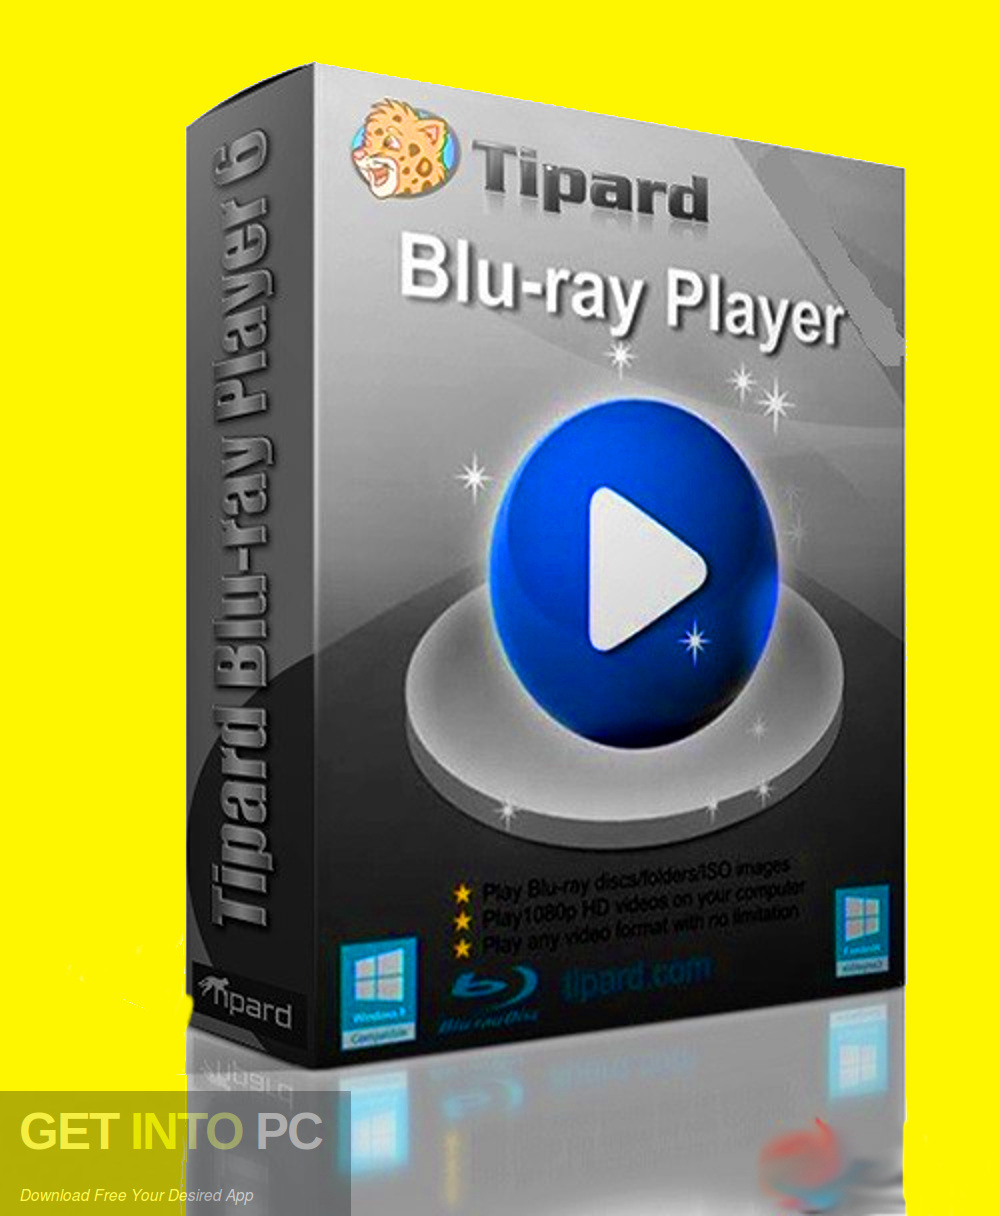 Tipard Blu-ray Player Free Download-GetintoPC.com